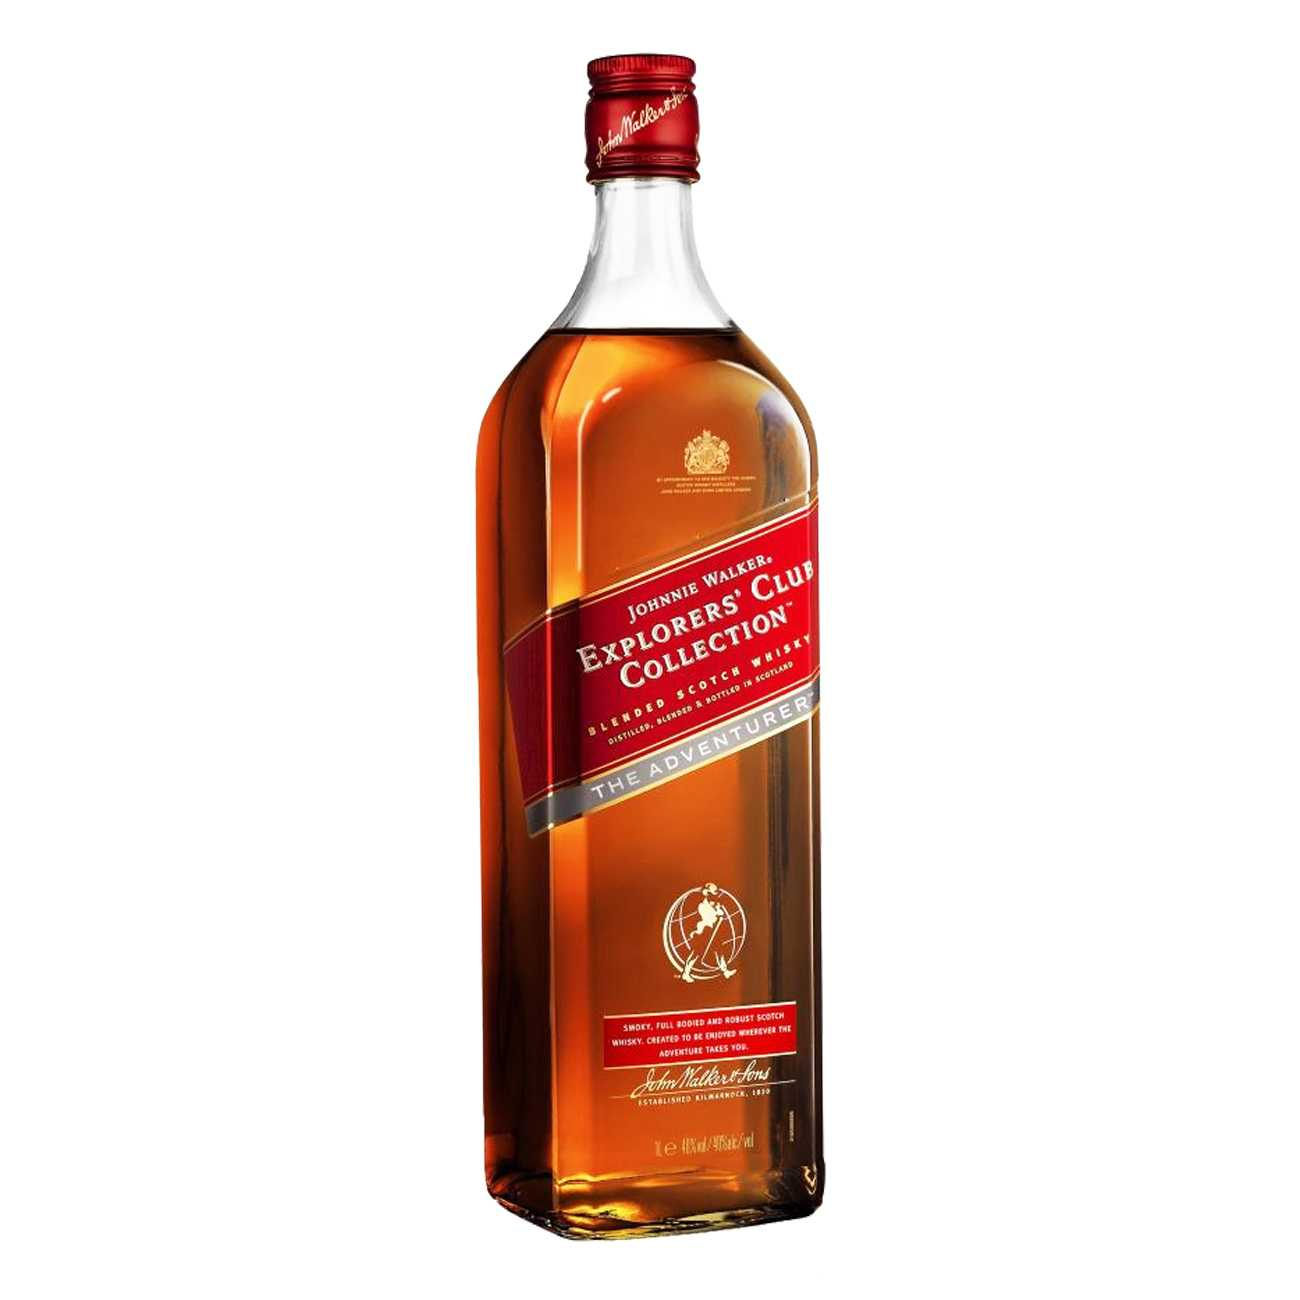 Whisky scotian, EXPLORERS CLUB THE ADVENTURER 1000 ML, Johnnie Walker